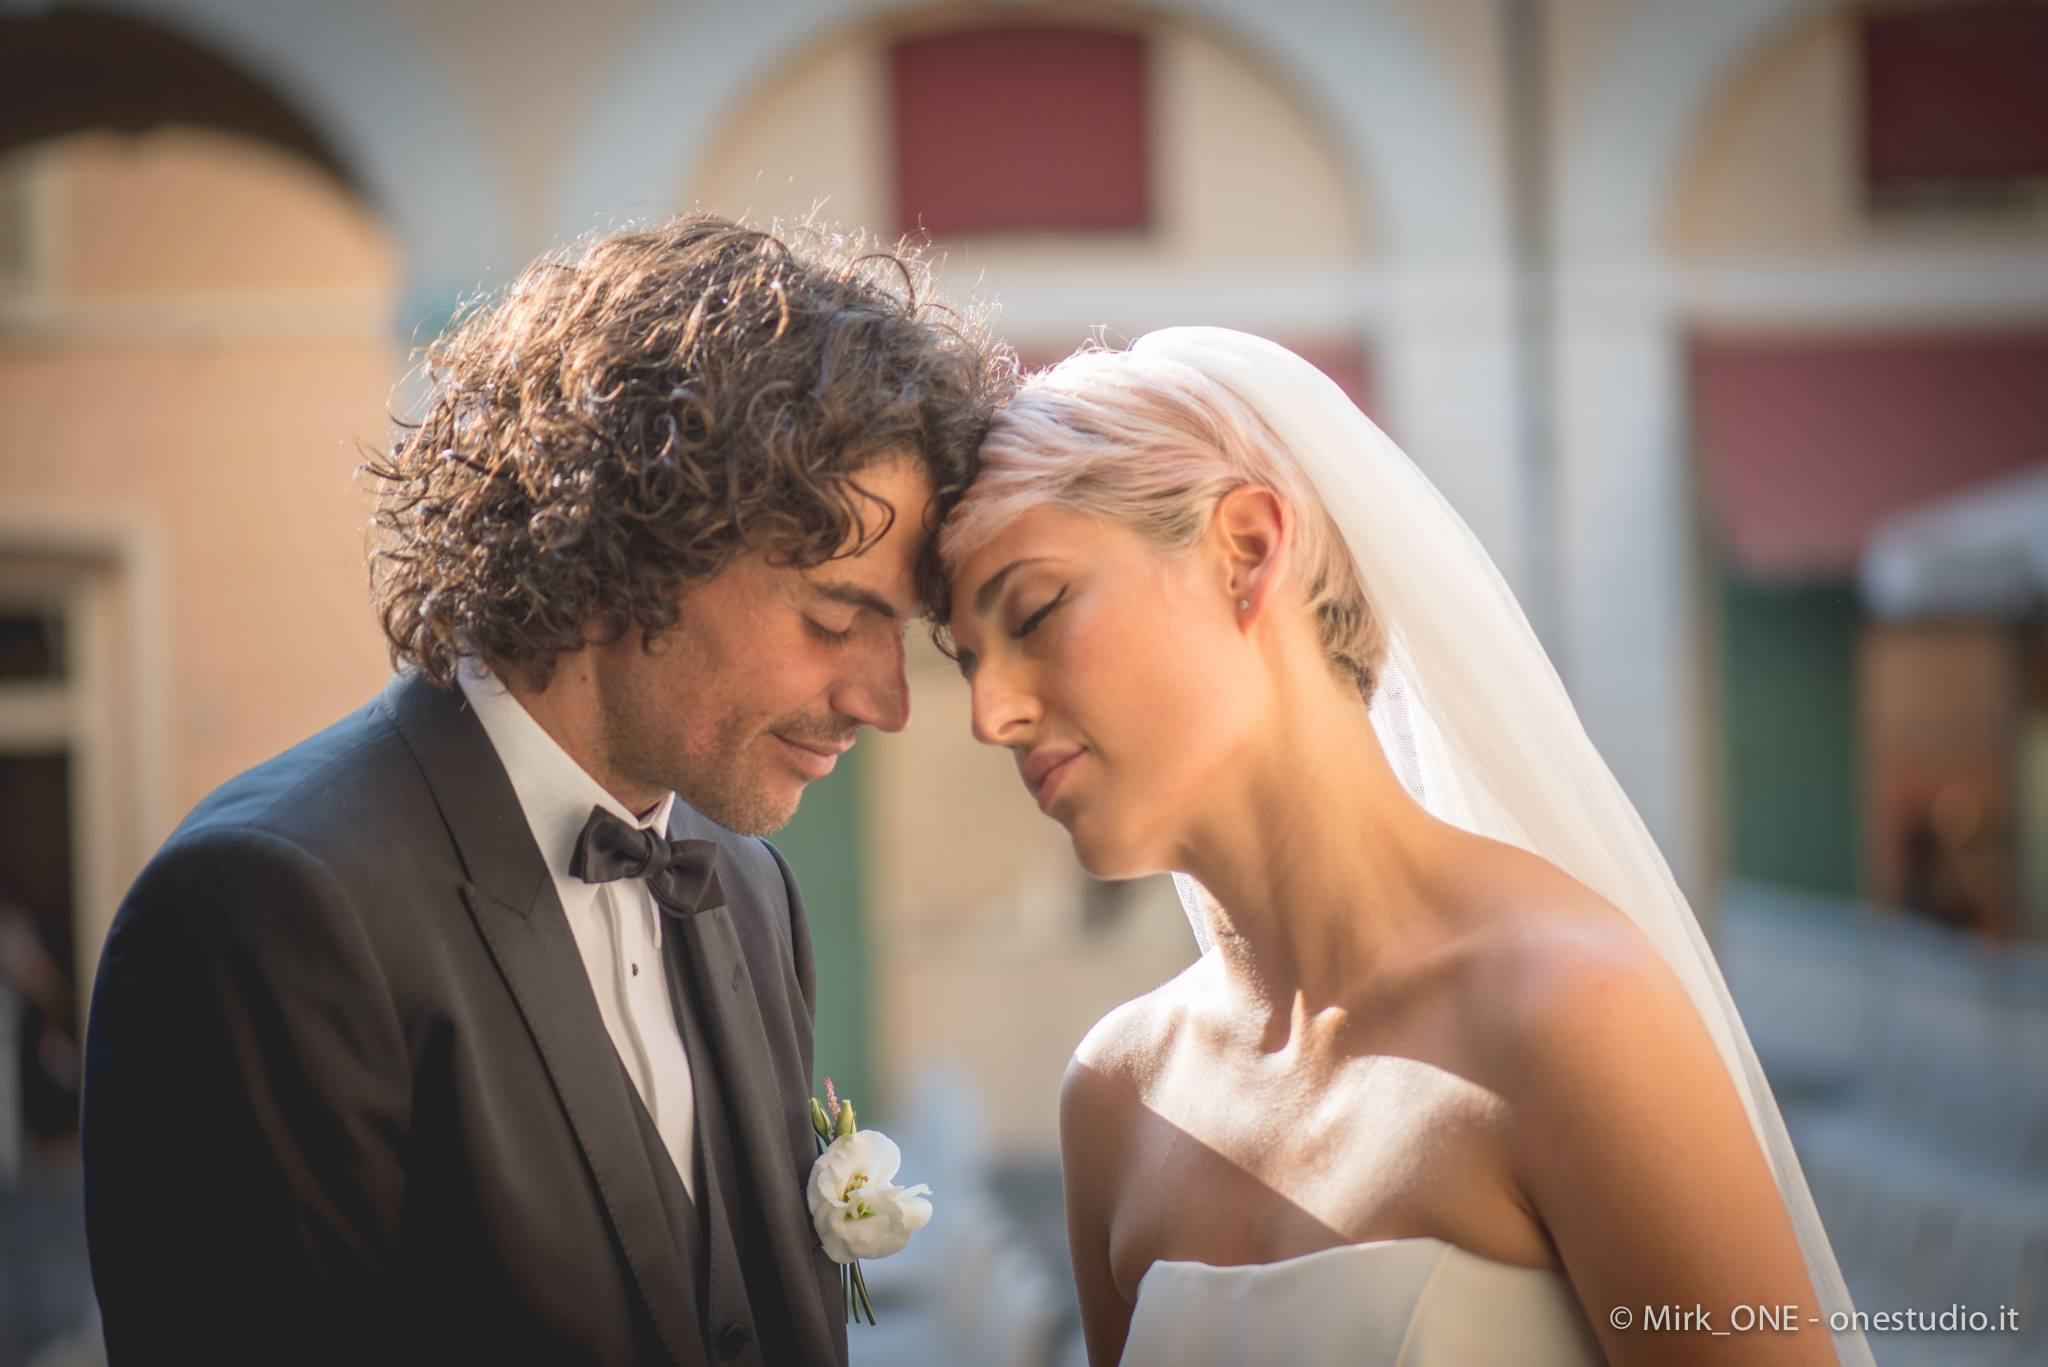 http://lnx.mirkone.it/wp-content/uploads/2015/07/mirk_ONE-fotografo-matrimonio-00827.jpg